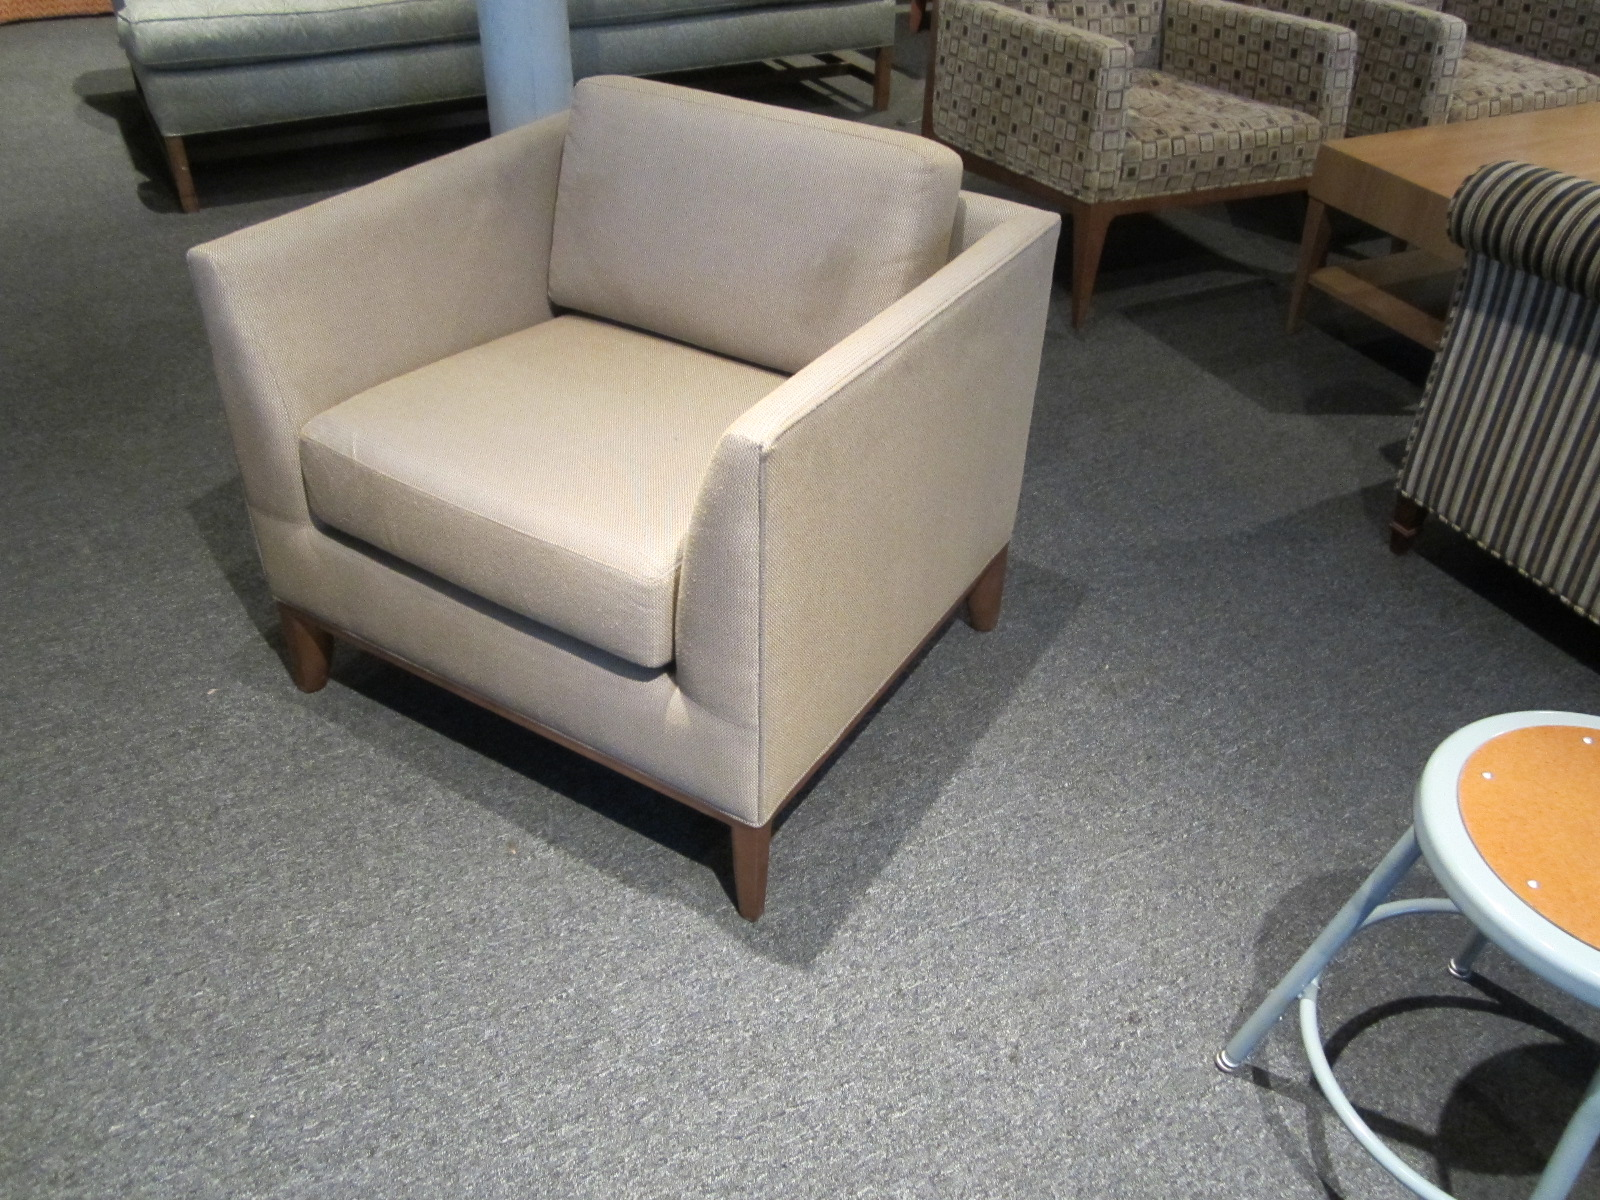 bernhardt london club leather sofa price where to buy sectional sofas chairs conklin office furniture